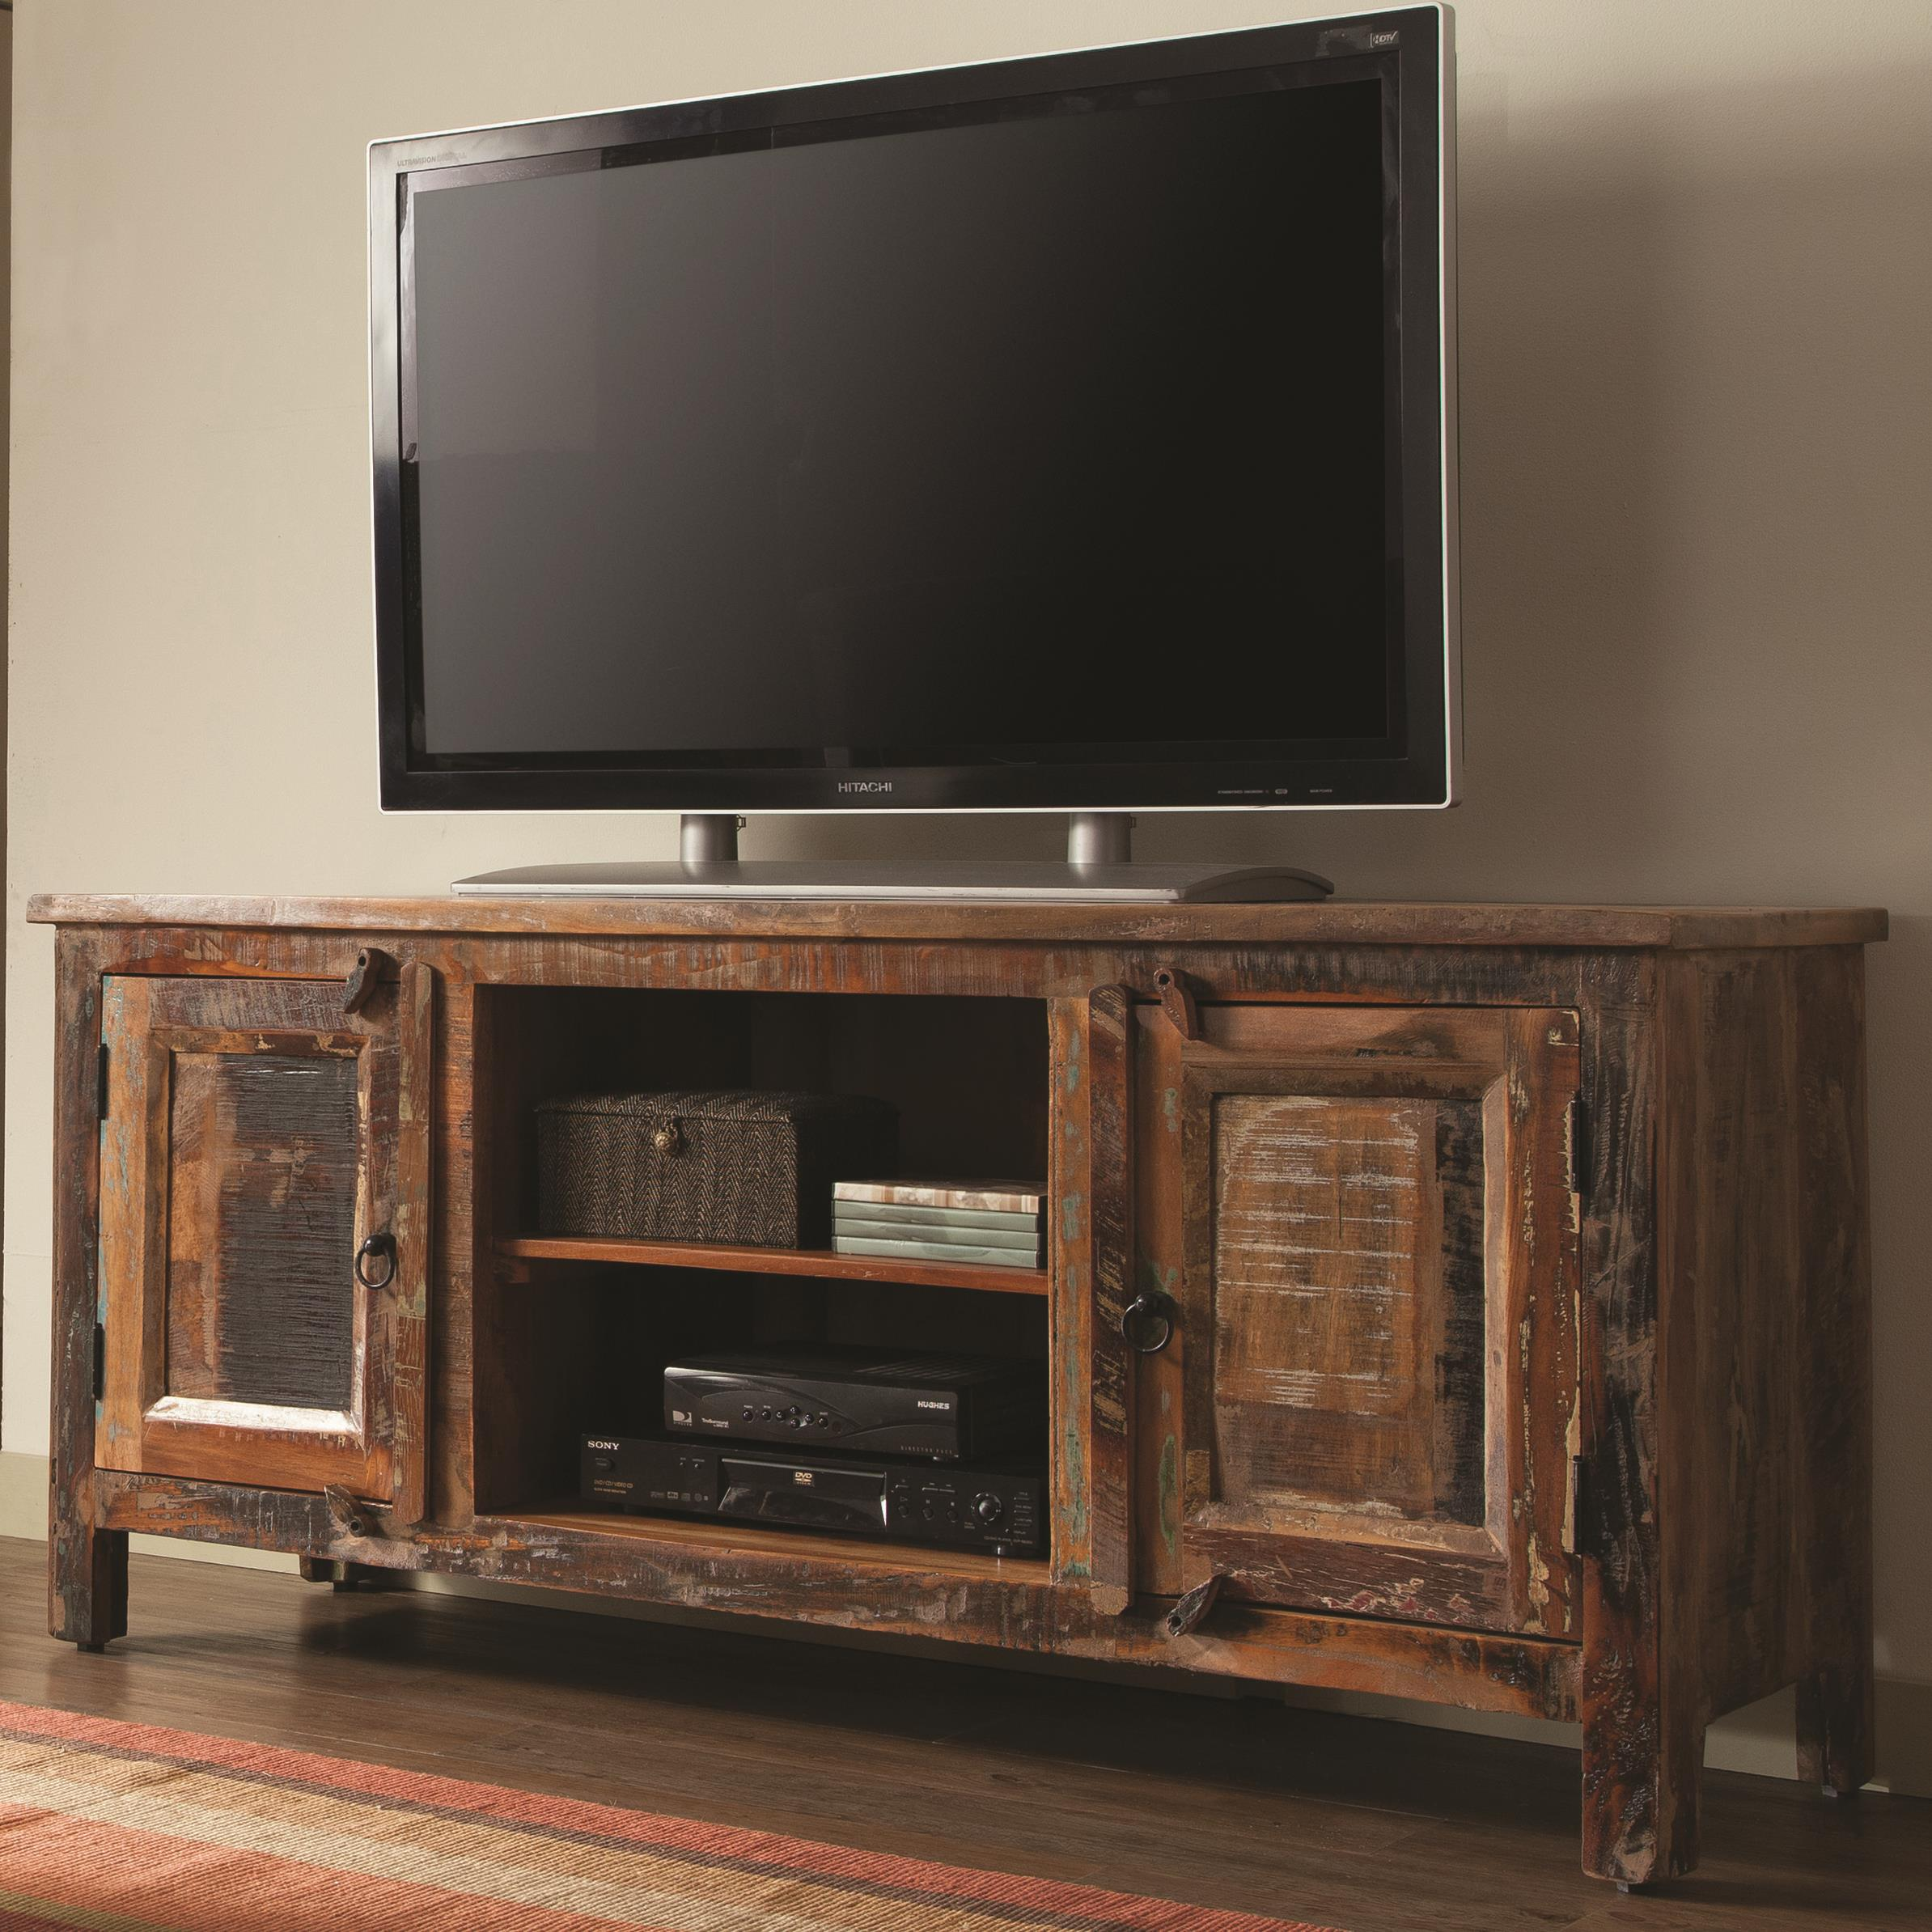 Accent Cabinets Reclaimed Wood TV Stand Quality Furniture At Affordable Prices In Philadelphia